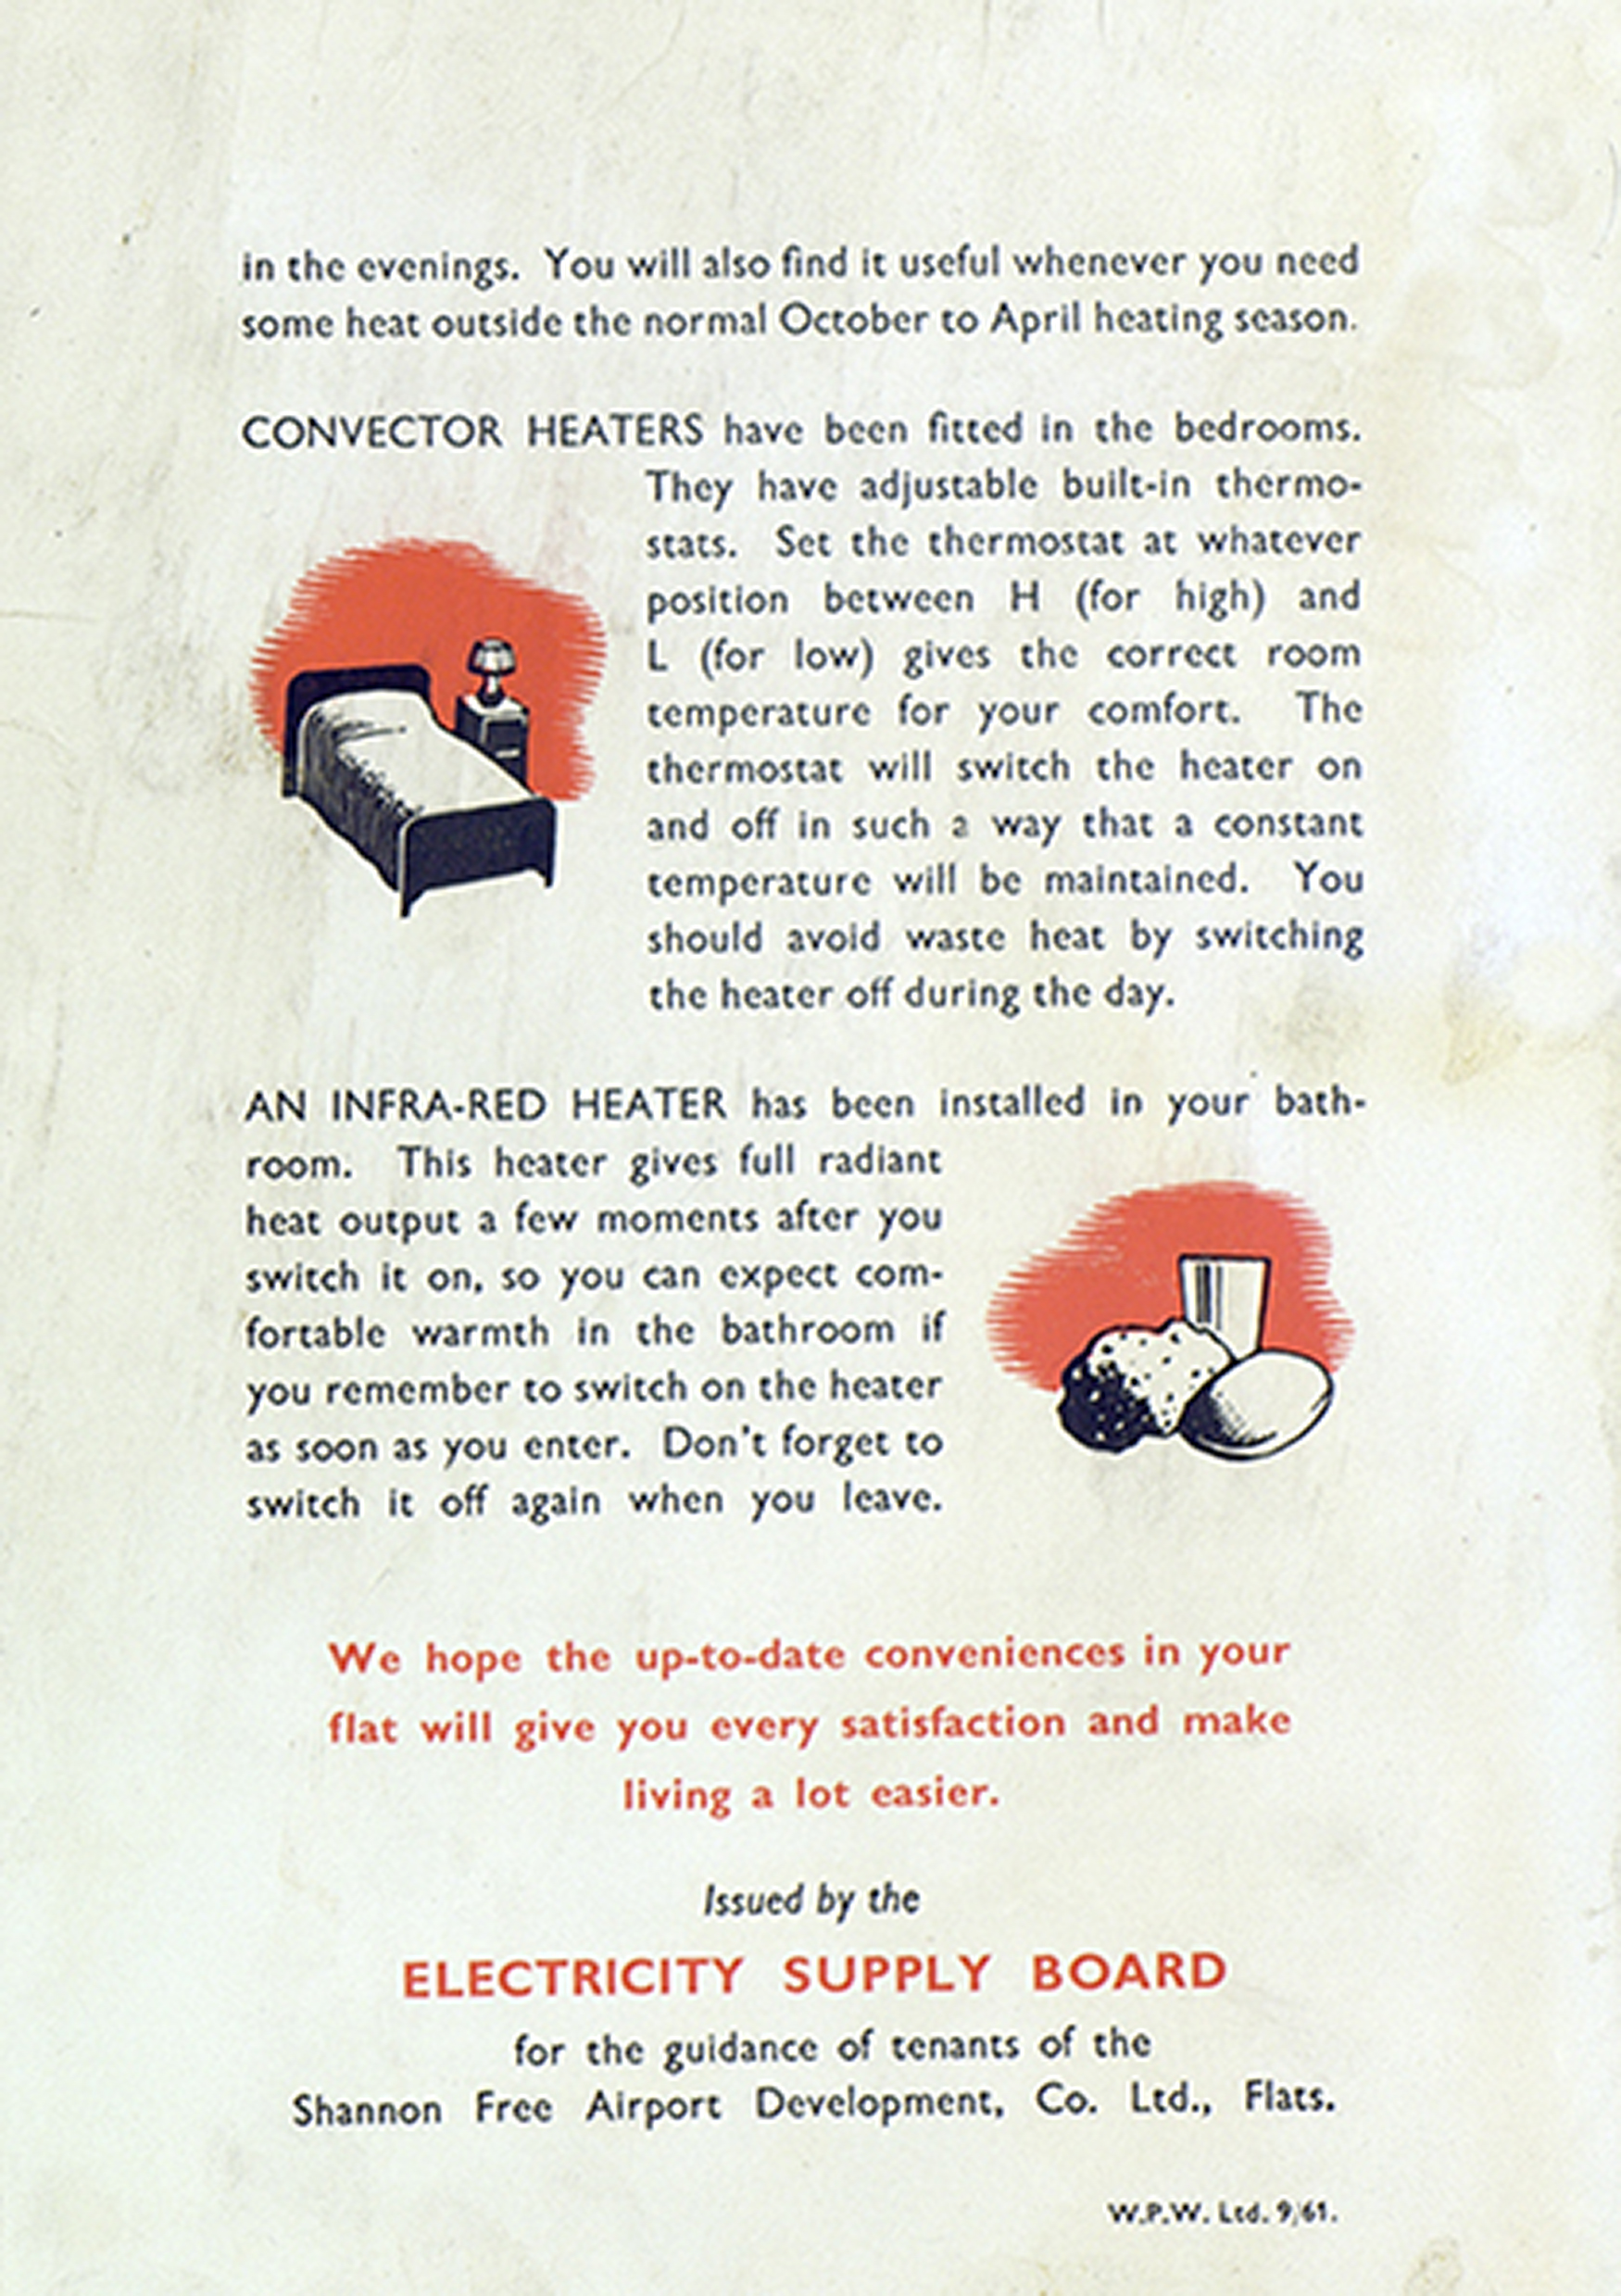 Welcome to your all-electric flat, 1961, p 4